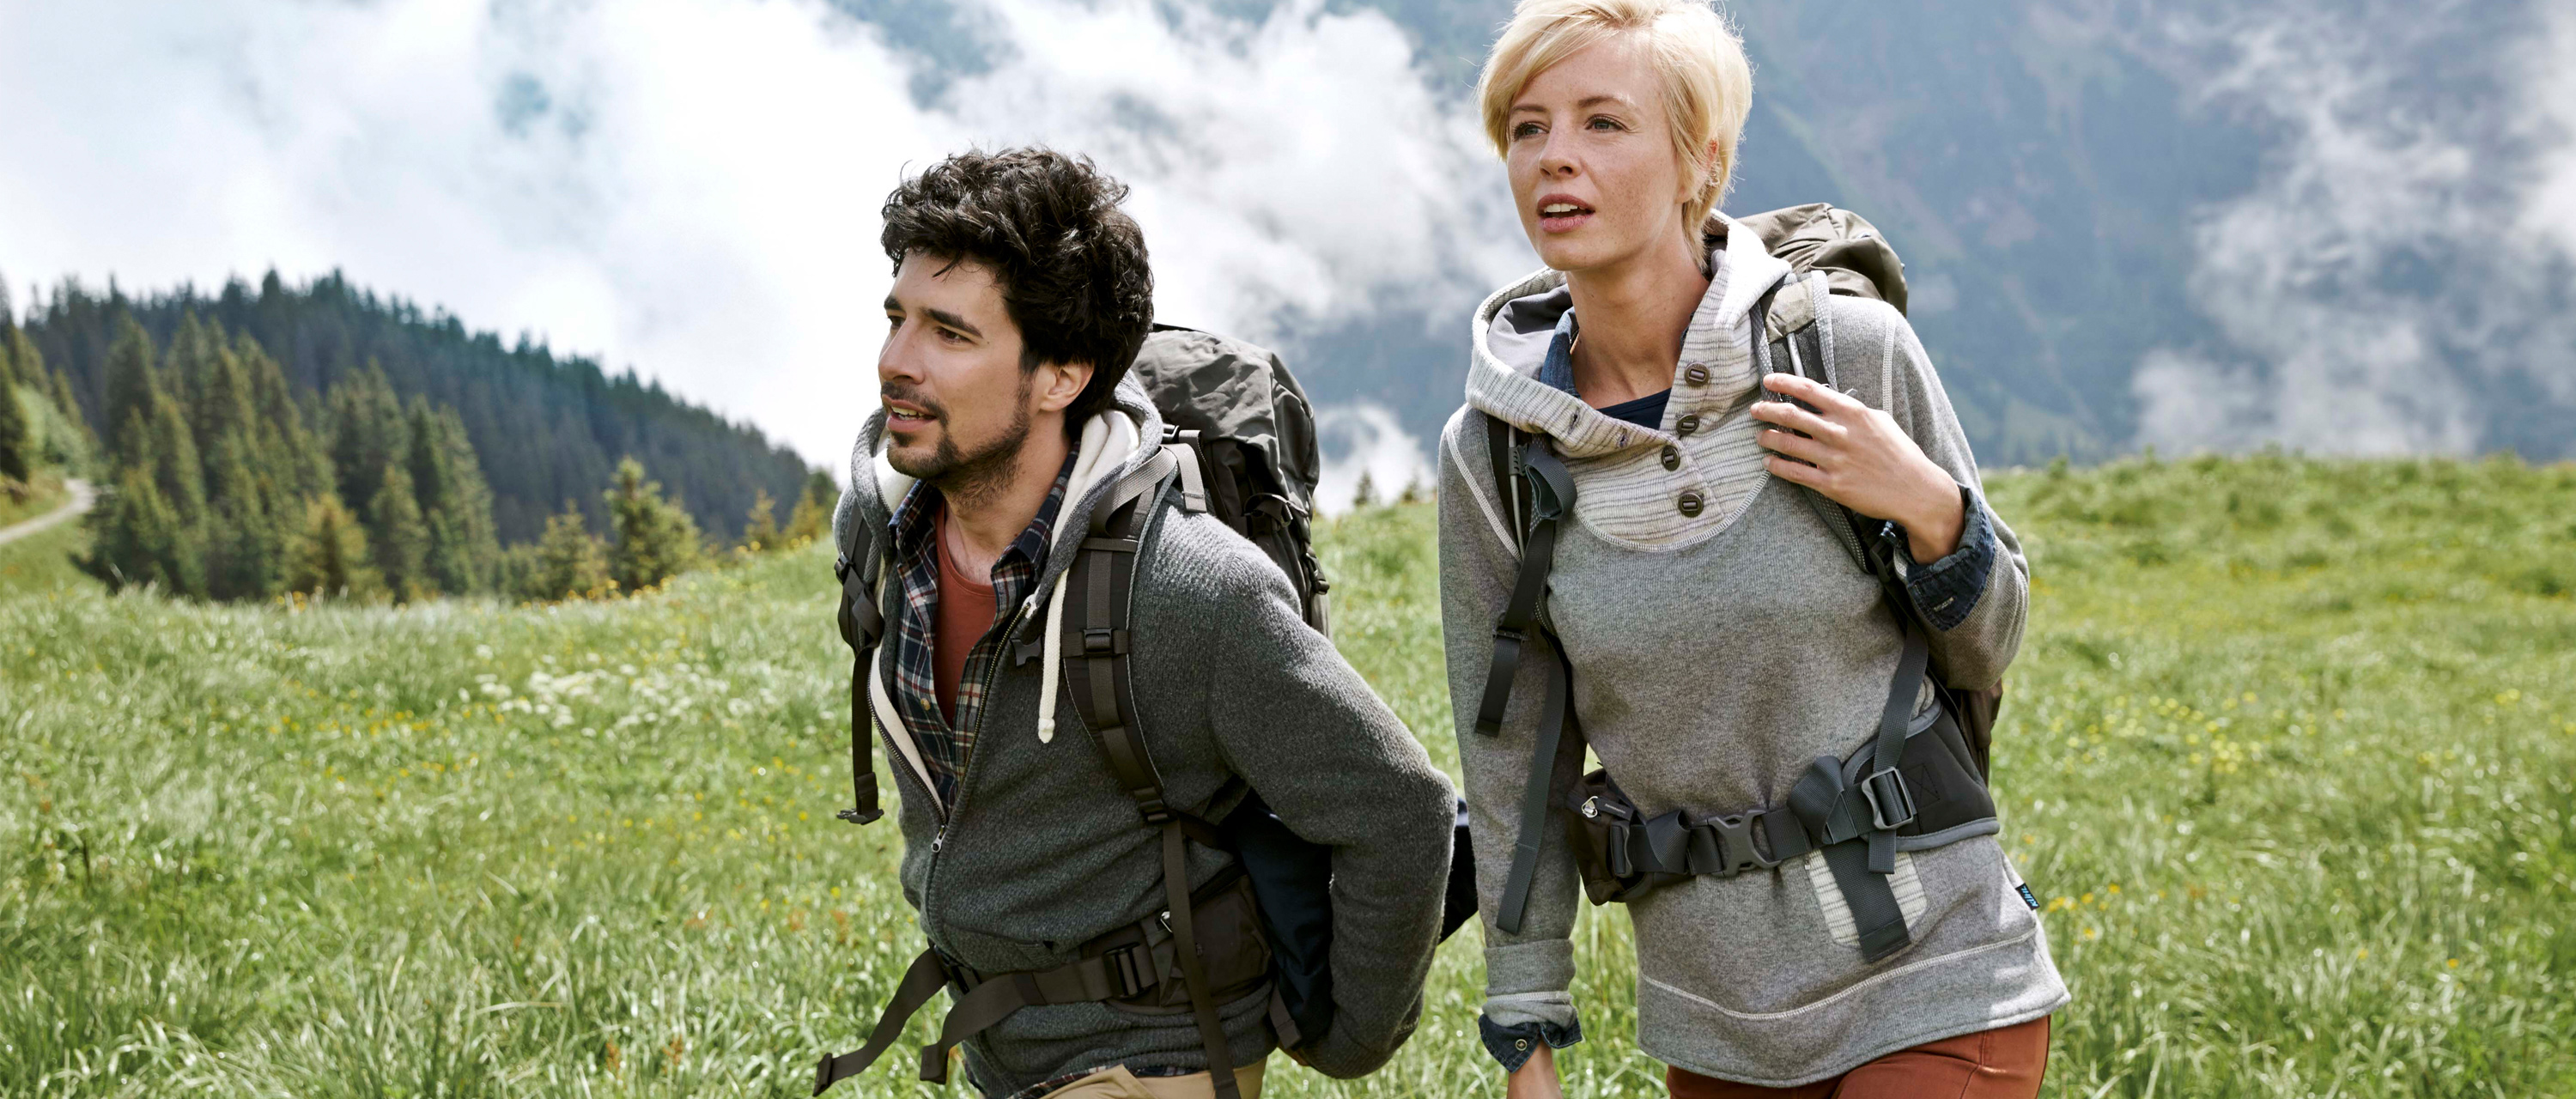 Couple on hiking